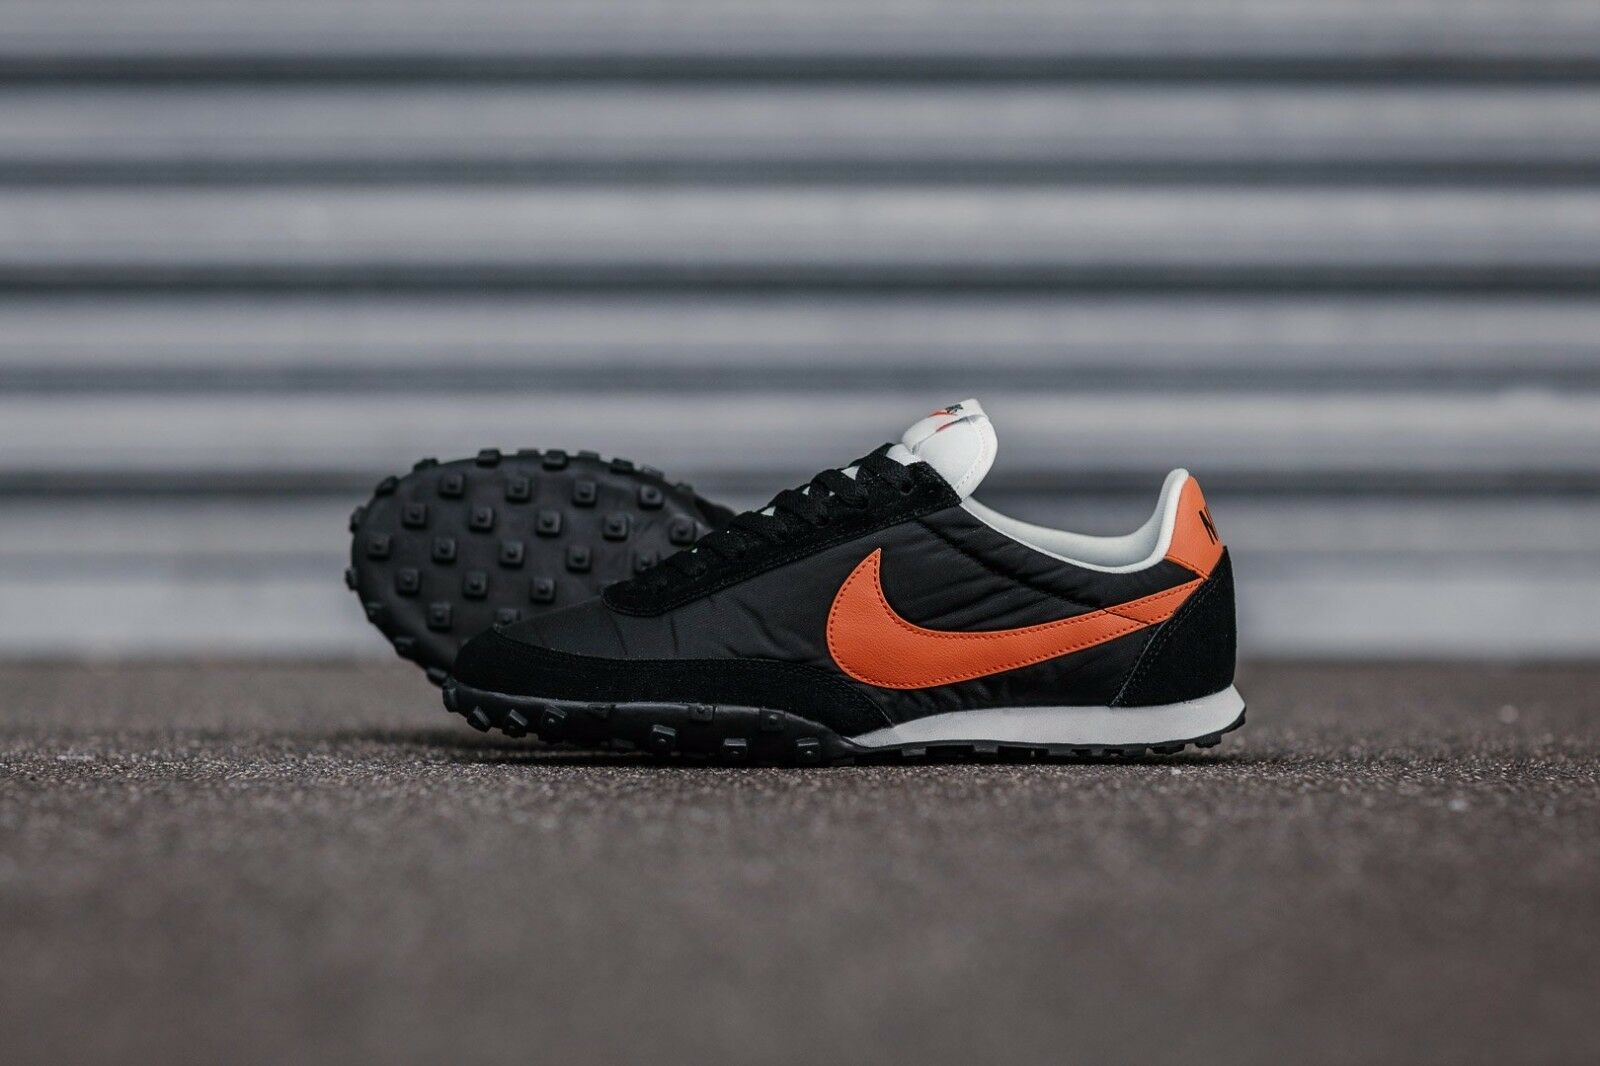 Nike Waffle Racer 17 Black Orange size 8.5. 876255-003. internationalist